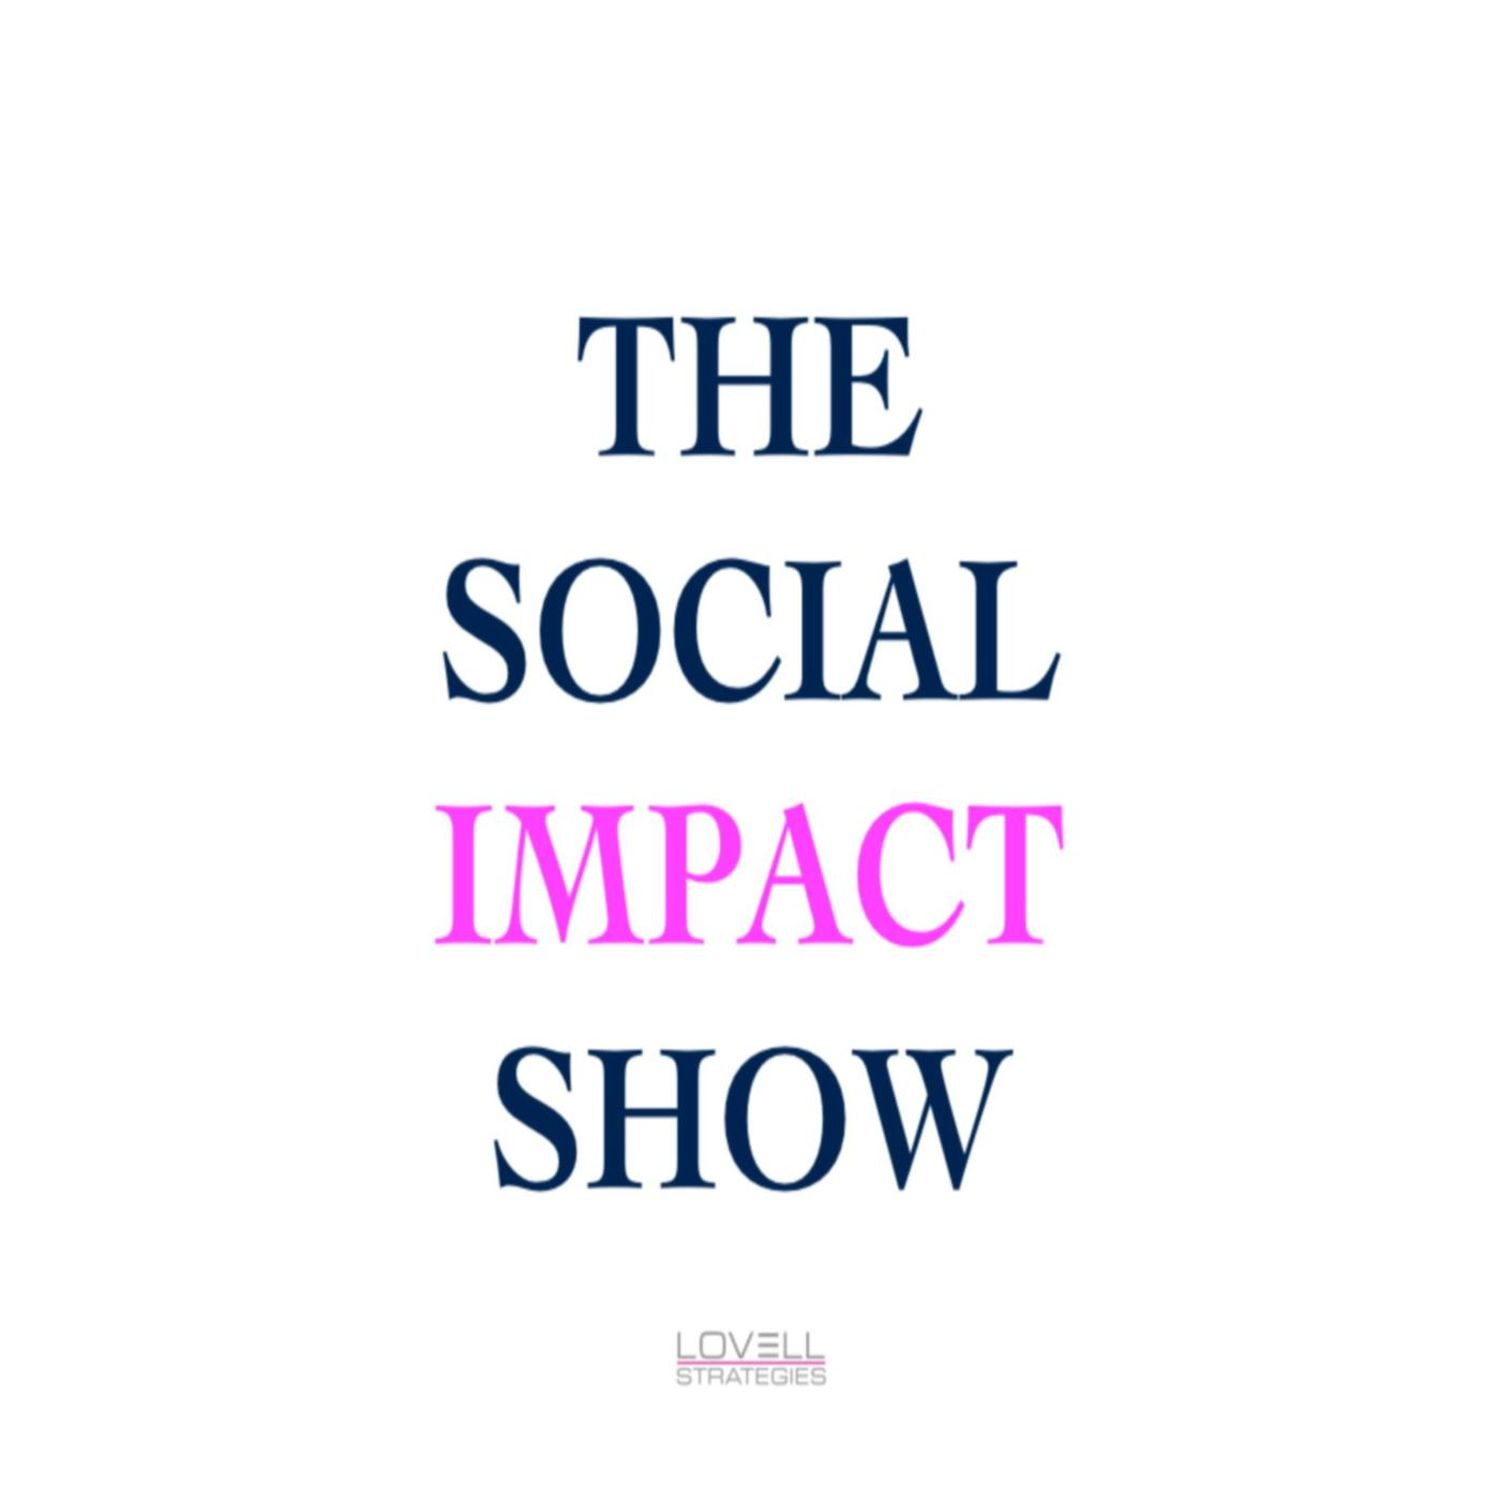 The Social Impact Show